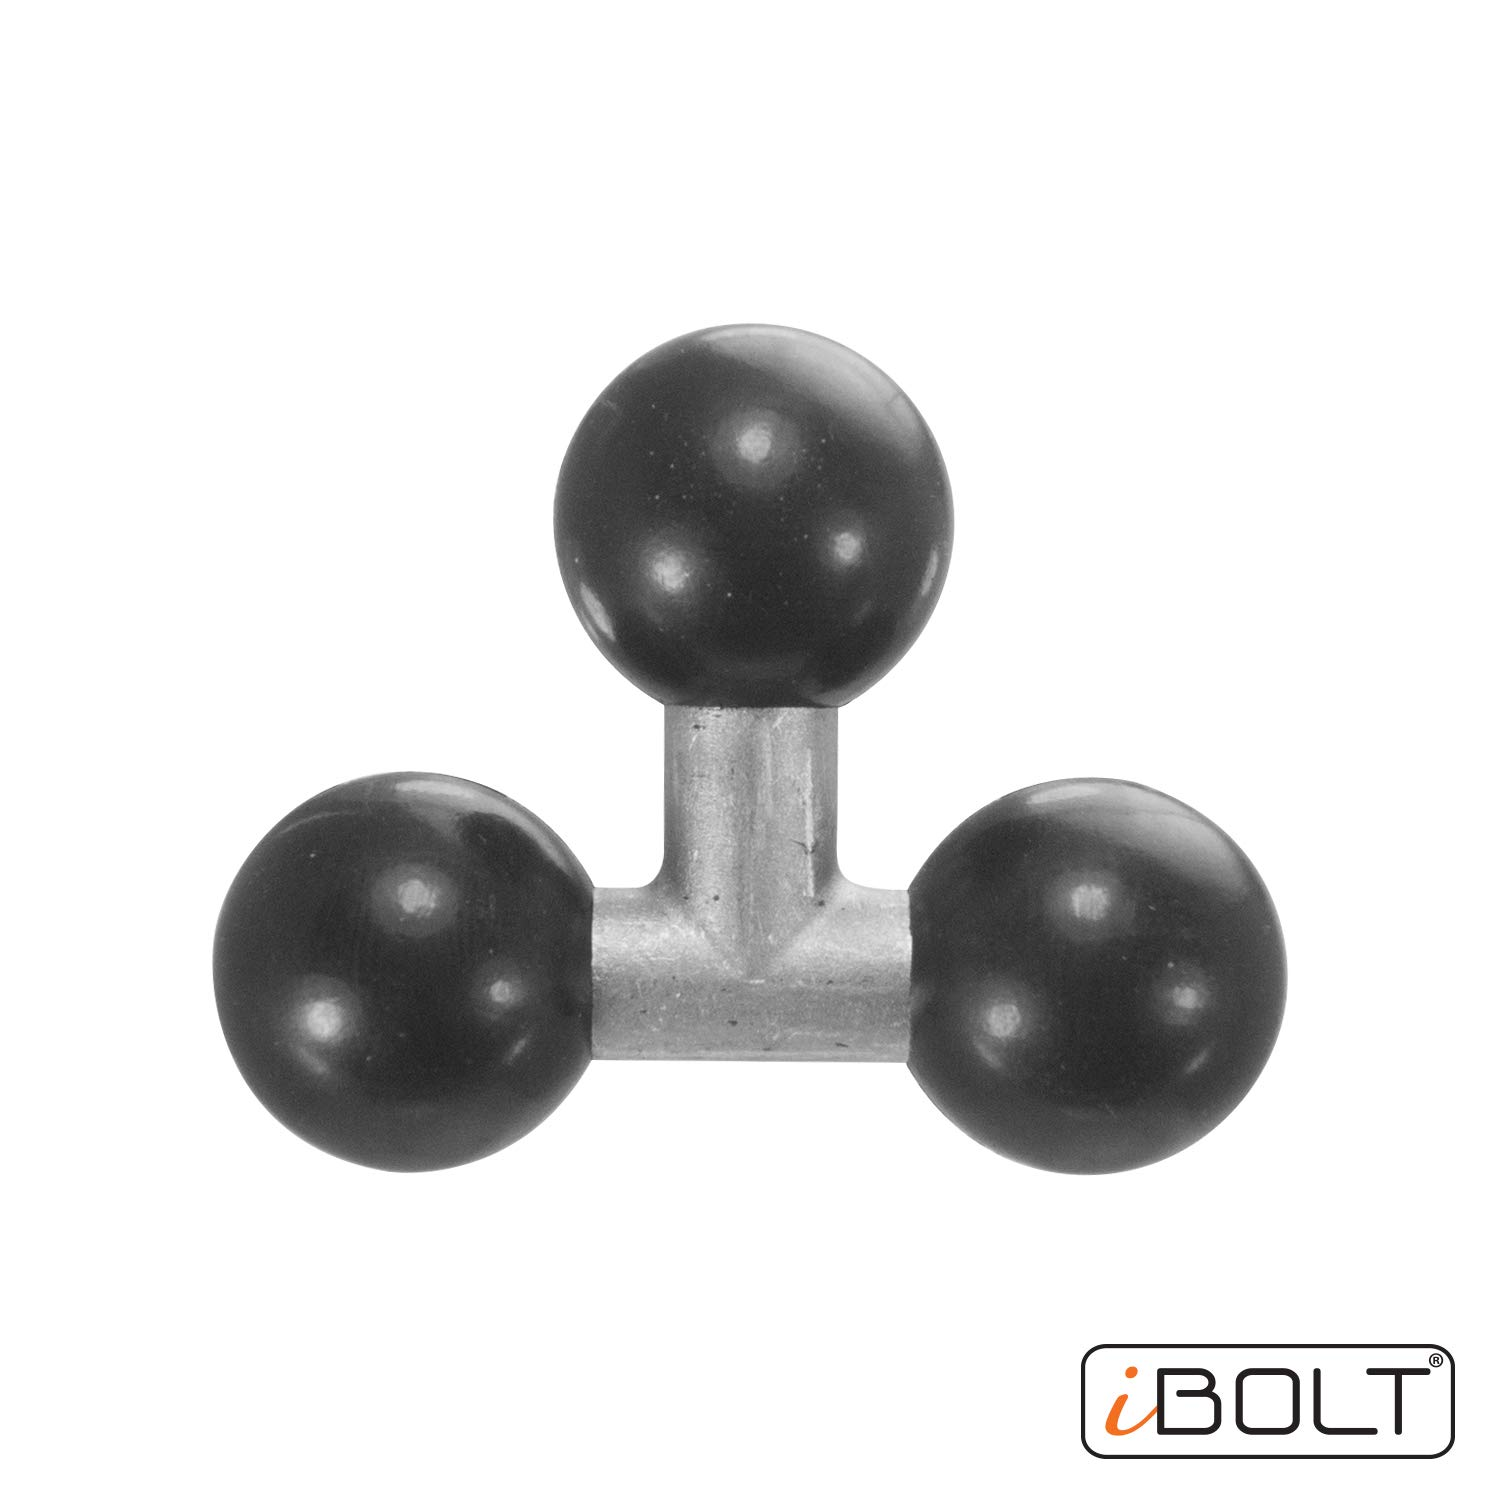 1 inch iBOLT Triple 25mm 1 inch to 25mm Three Metal Ball Joint Extension Adapter for Industry Standard Dual Ball Socket mounting arms